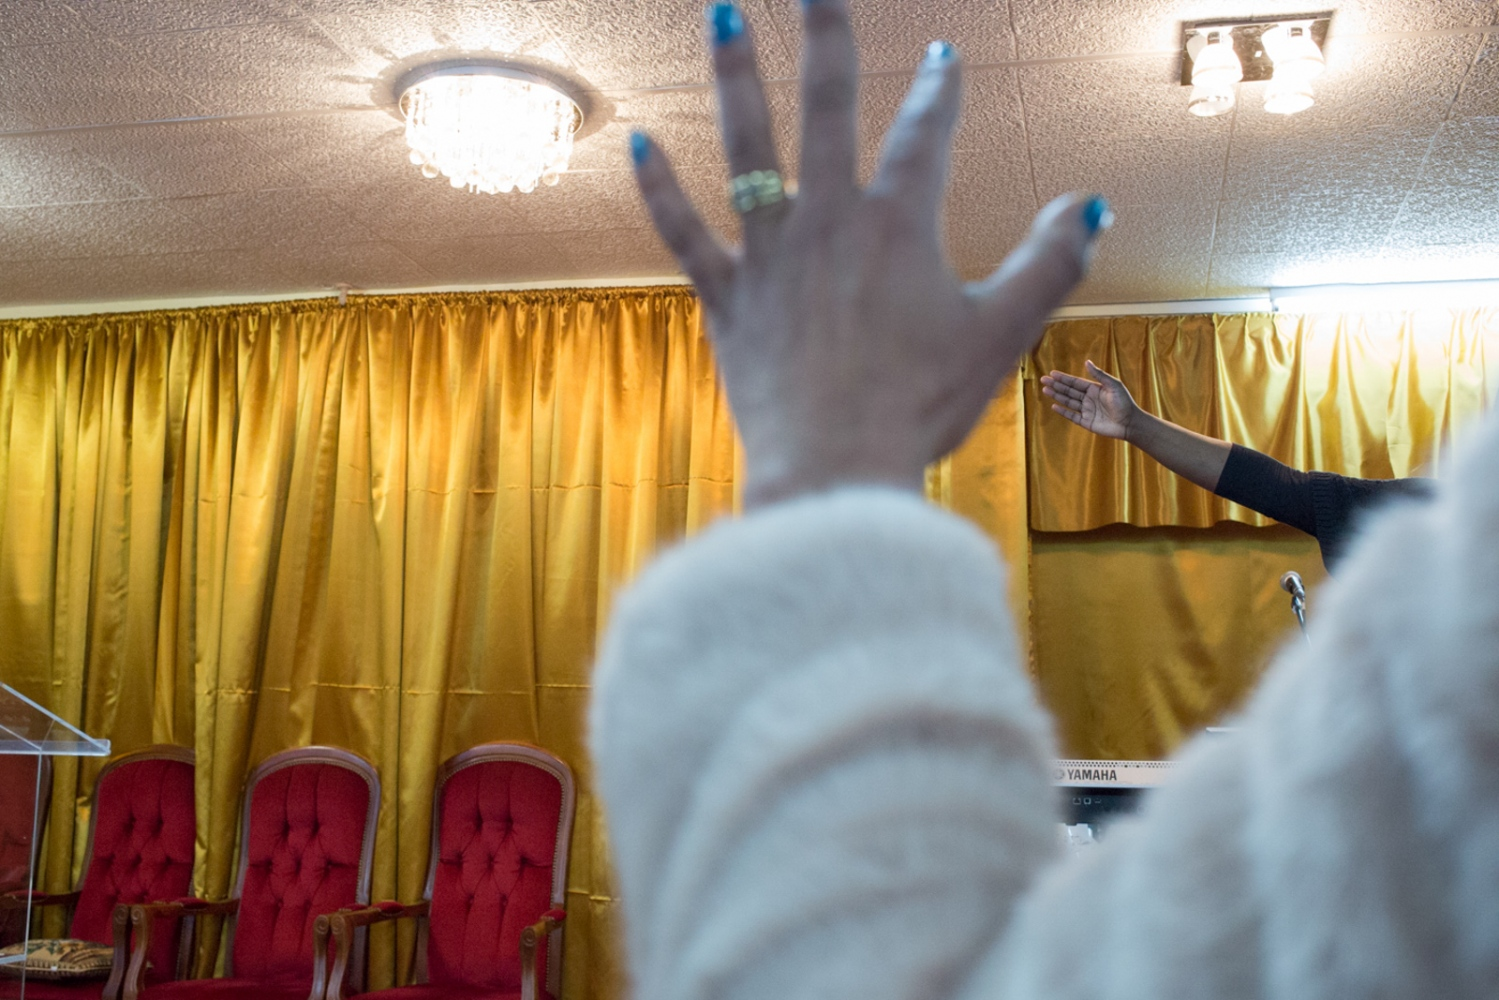 Prayers in an African Christian church in Bagnollet. The Afro-French community frequents often Protestant mixed with African rituals, having the Gospel as a religious rhythm. Bobigny, Ile de France, France, 2015